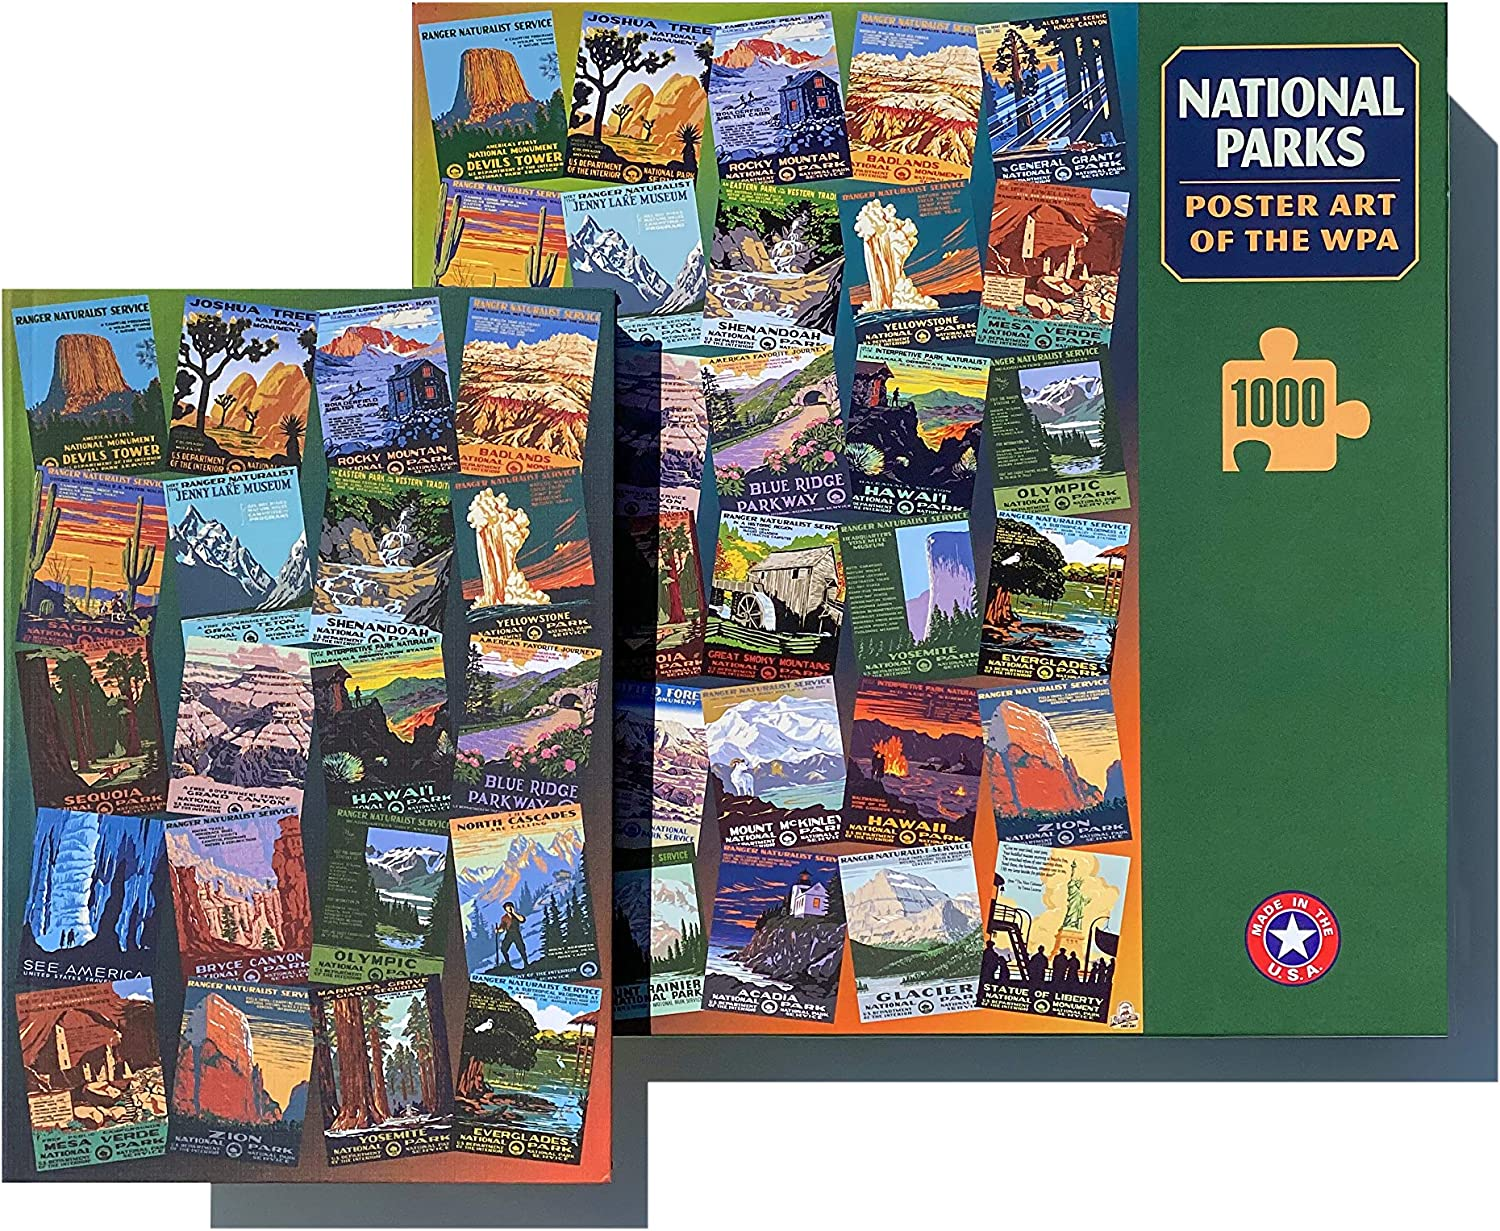 National Parks Poster Art Of The Wpa 1000 Jigsaw Puzzle And National Parks Wpa Journal Sale Priced Bundle 29 99 Printed In Usa Toys Games Www Hapoelb7 Co Il